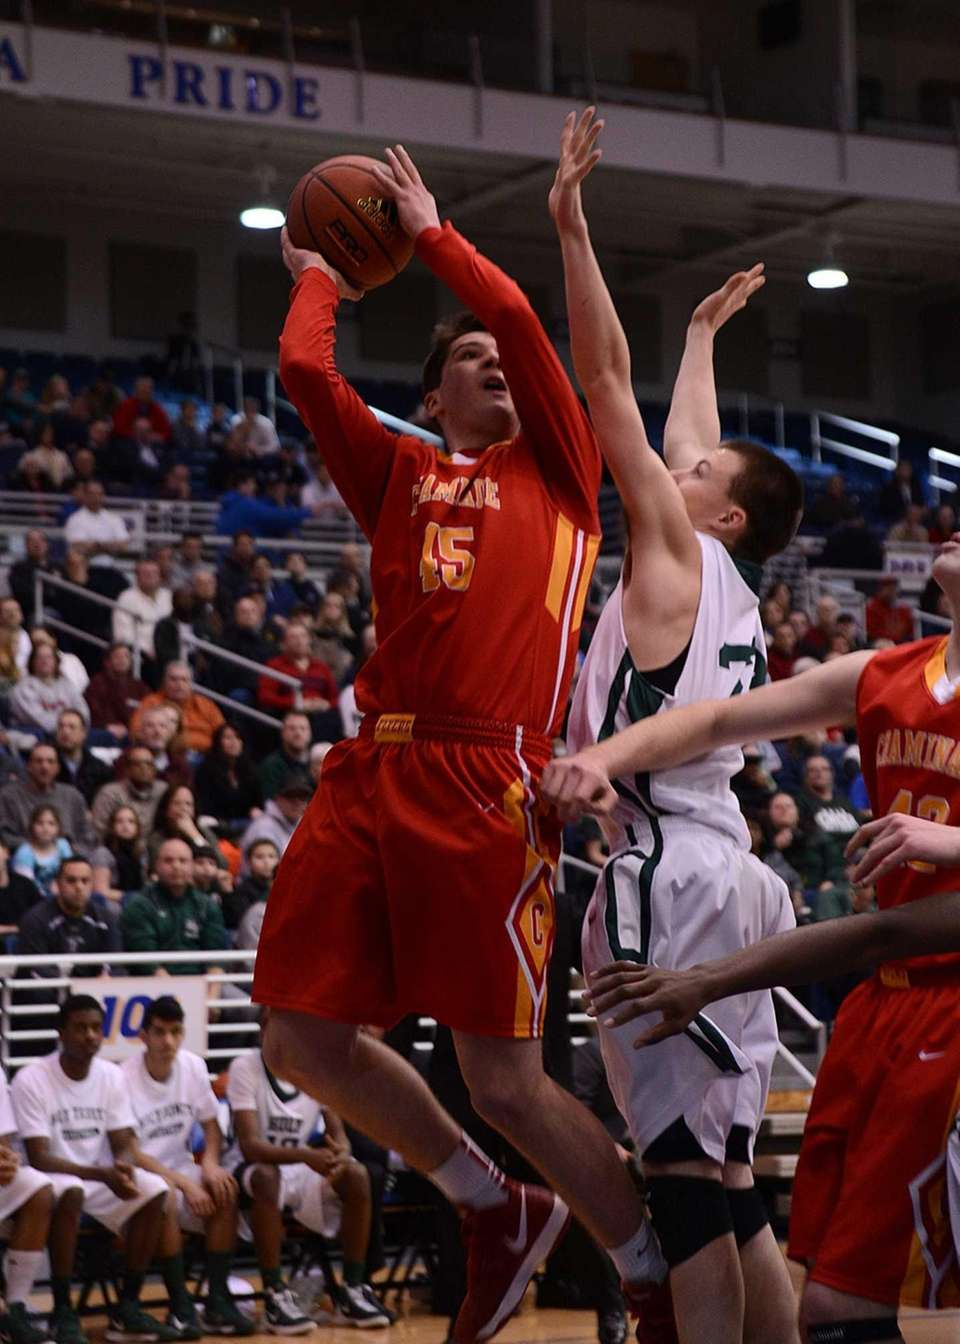 Chaminade's Brian Ehrhardt goes up for the layup